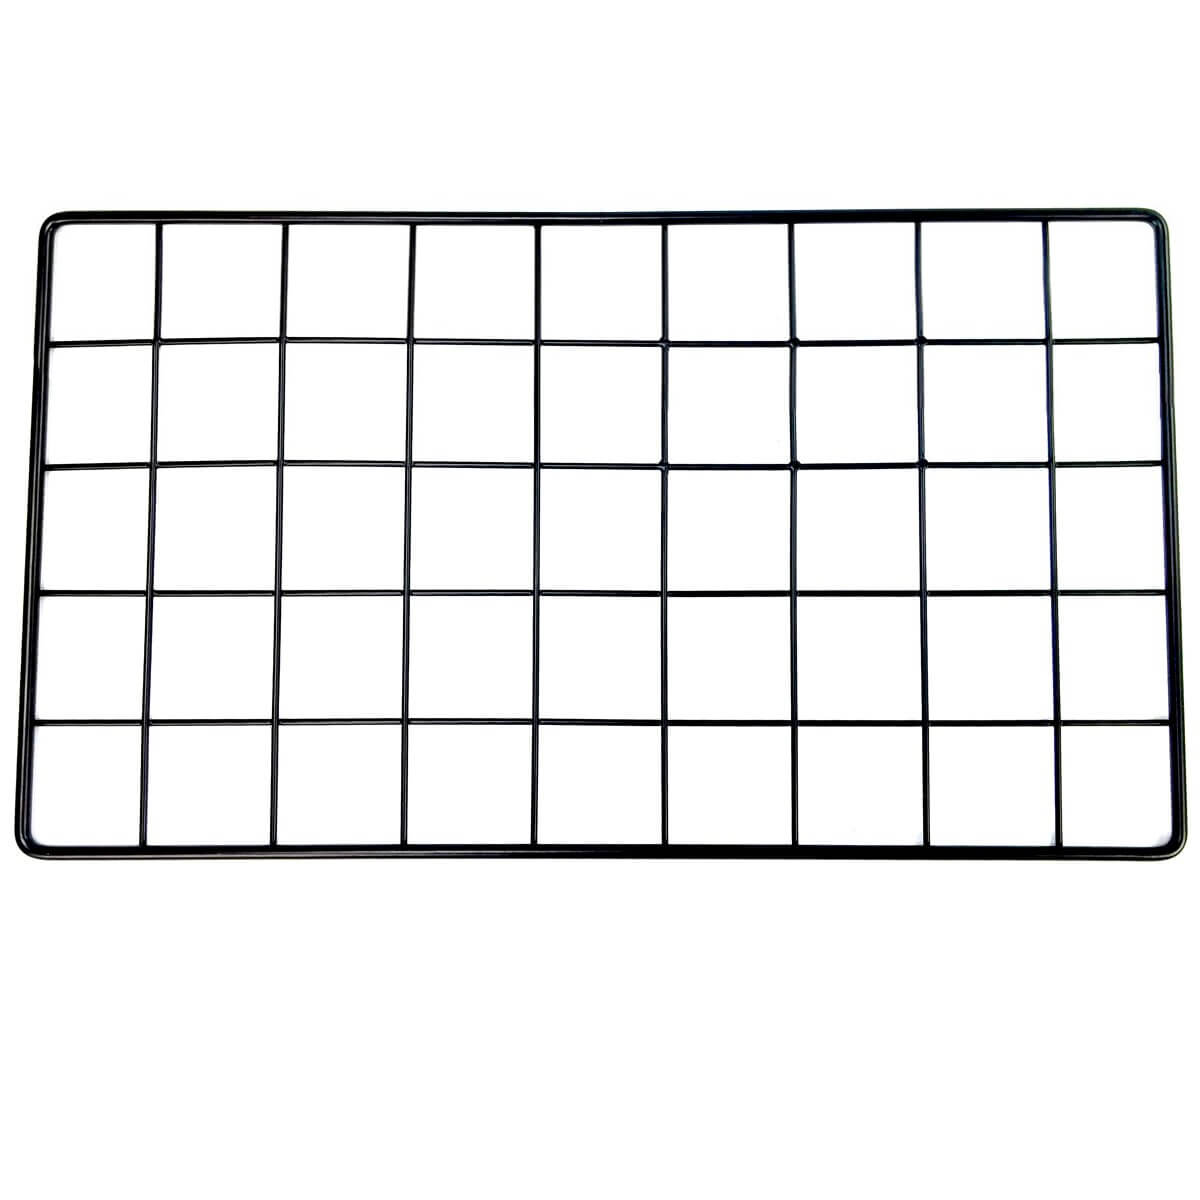 16 Rod Octagon Grid: Tall Half Grid 5x9 Inner Squares, 7 13/16 X 14 Inches